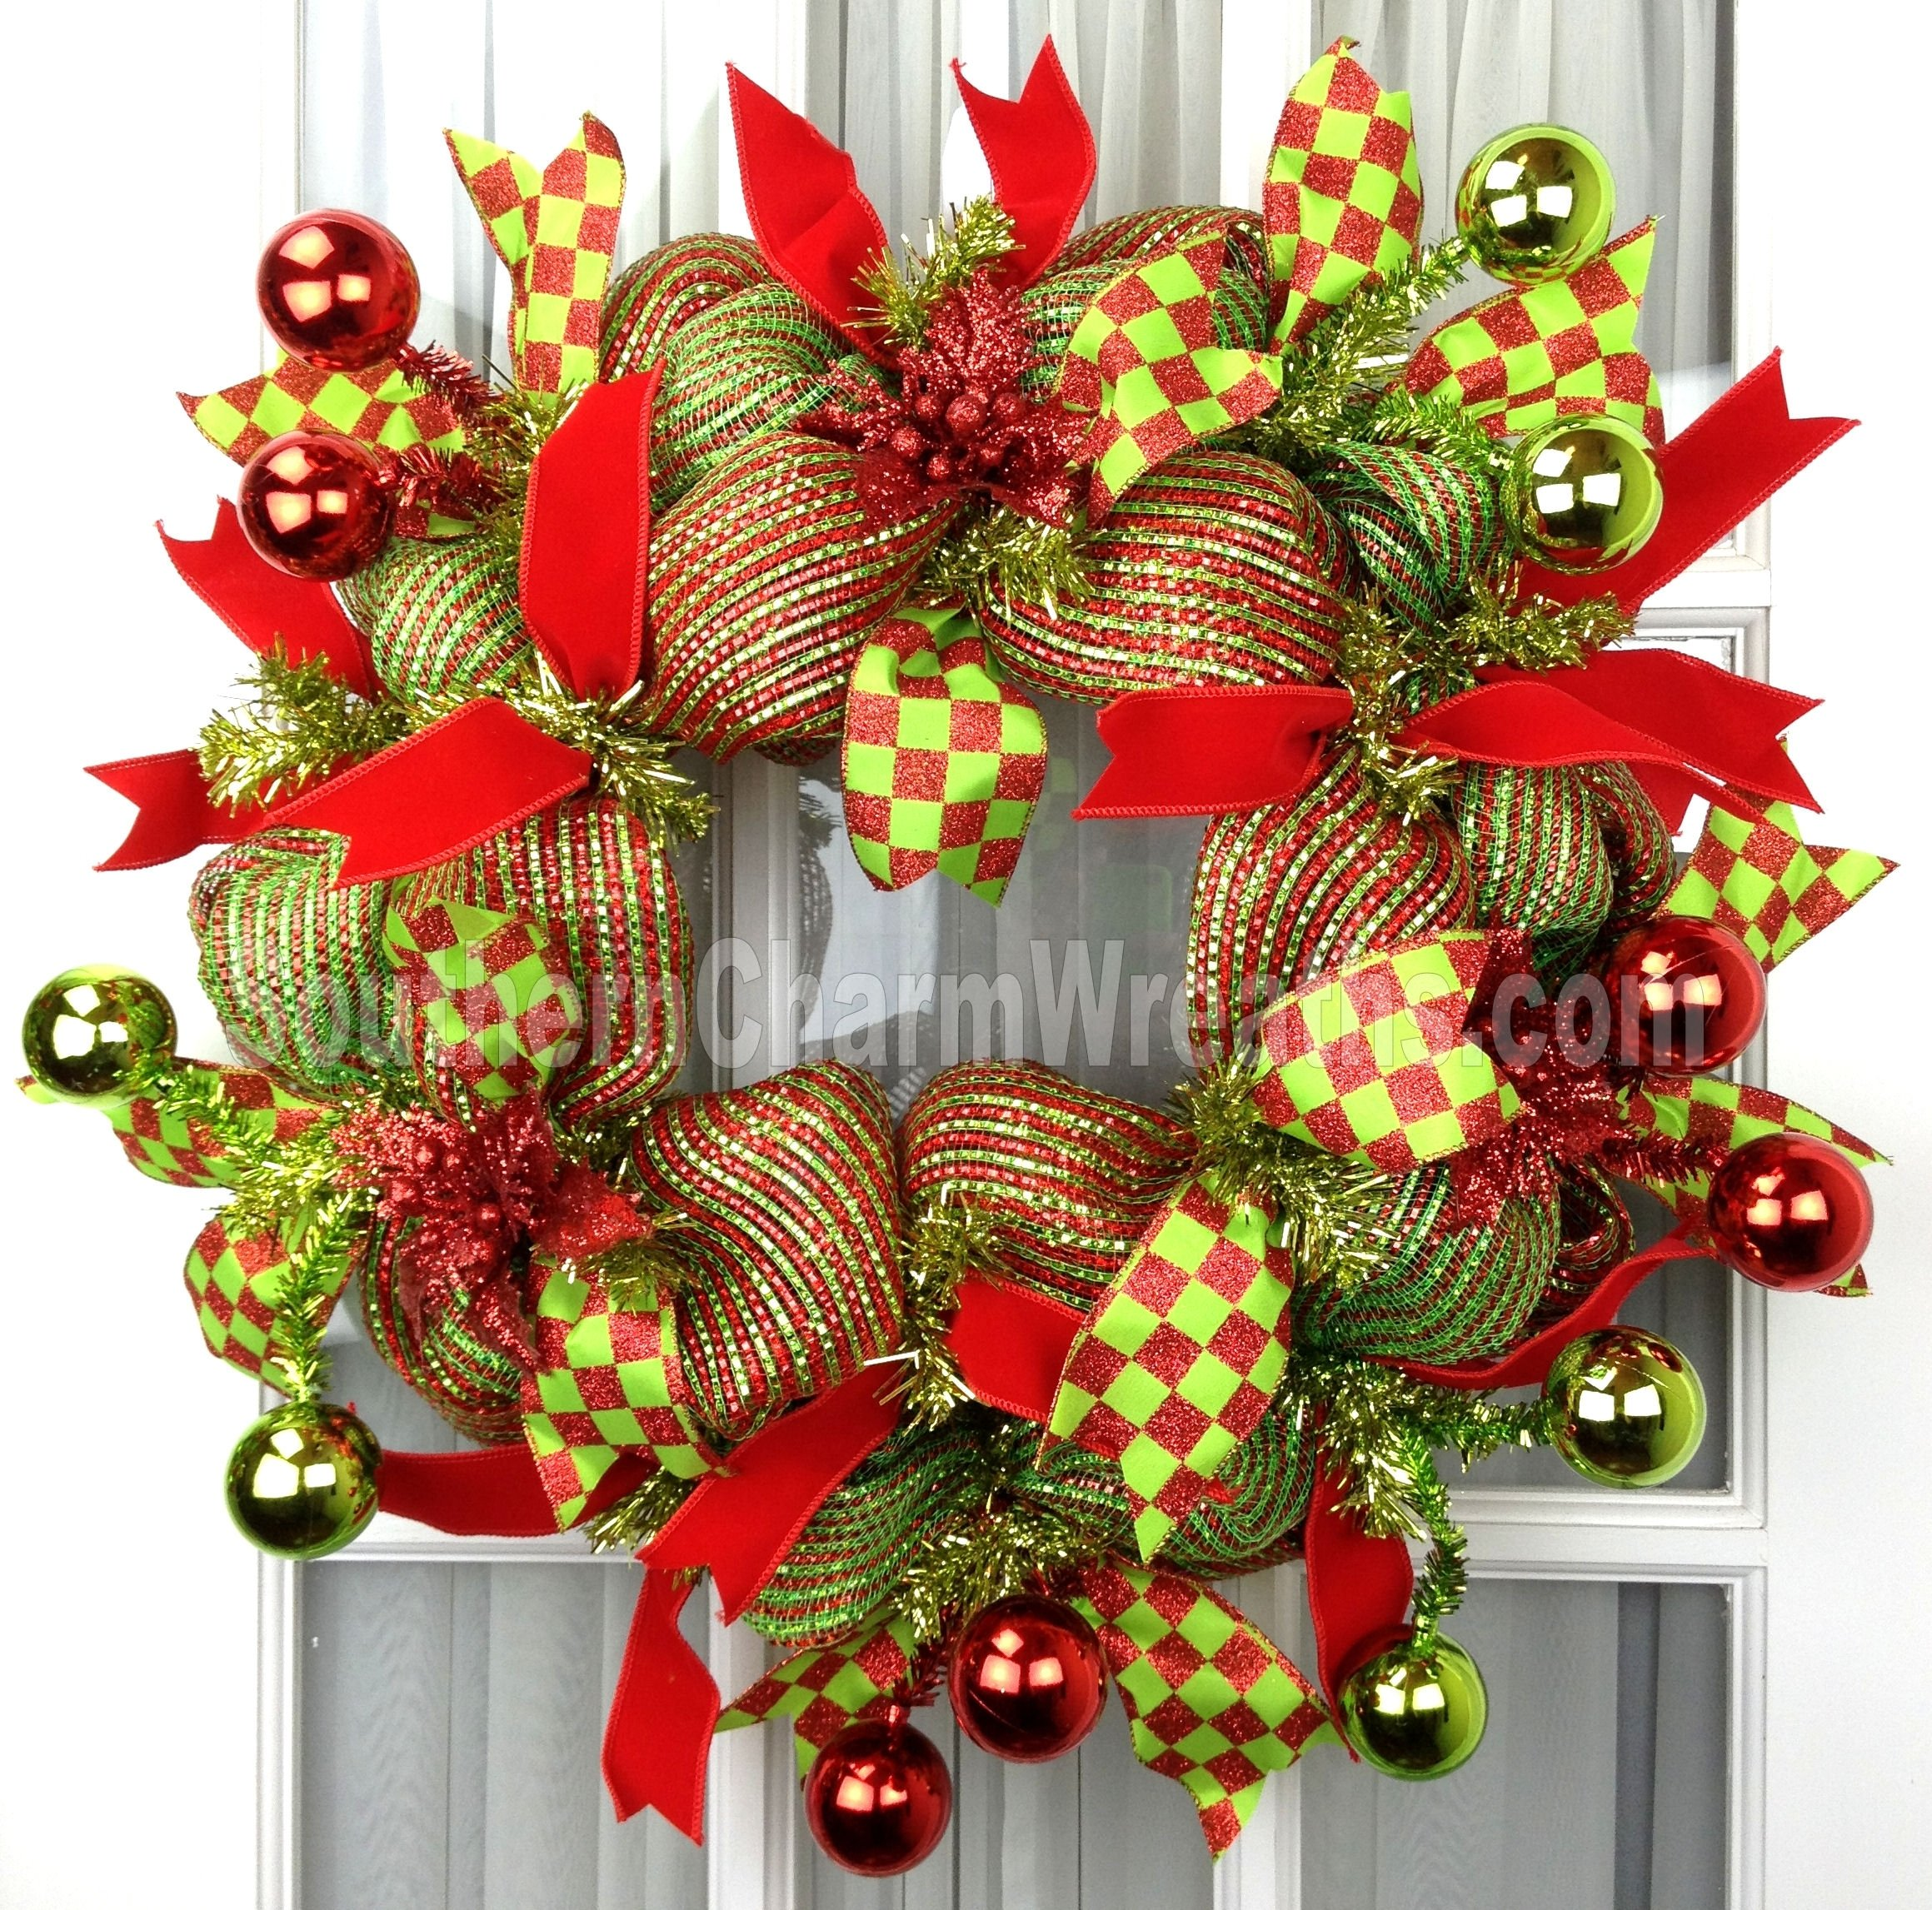 10 Ideal Deco Mesh Christmas Wreath Ideas holiday deco mesh wreaths southern charm wreaths 1 2020